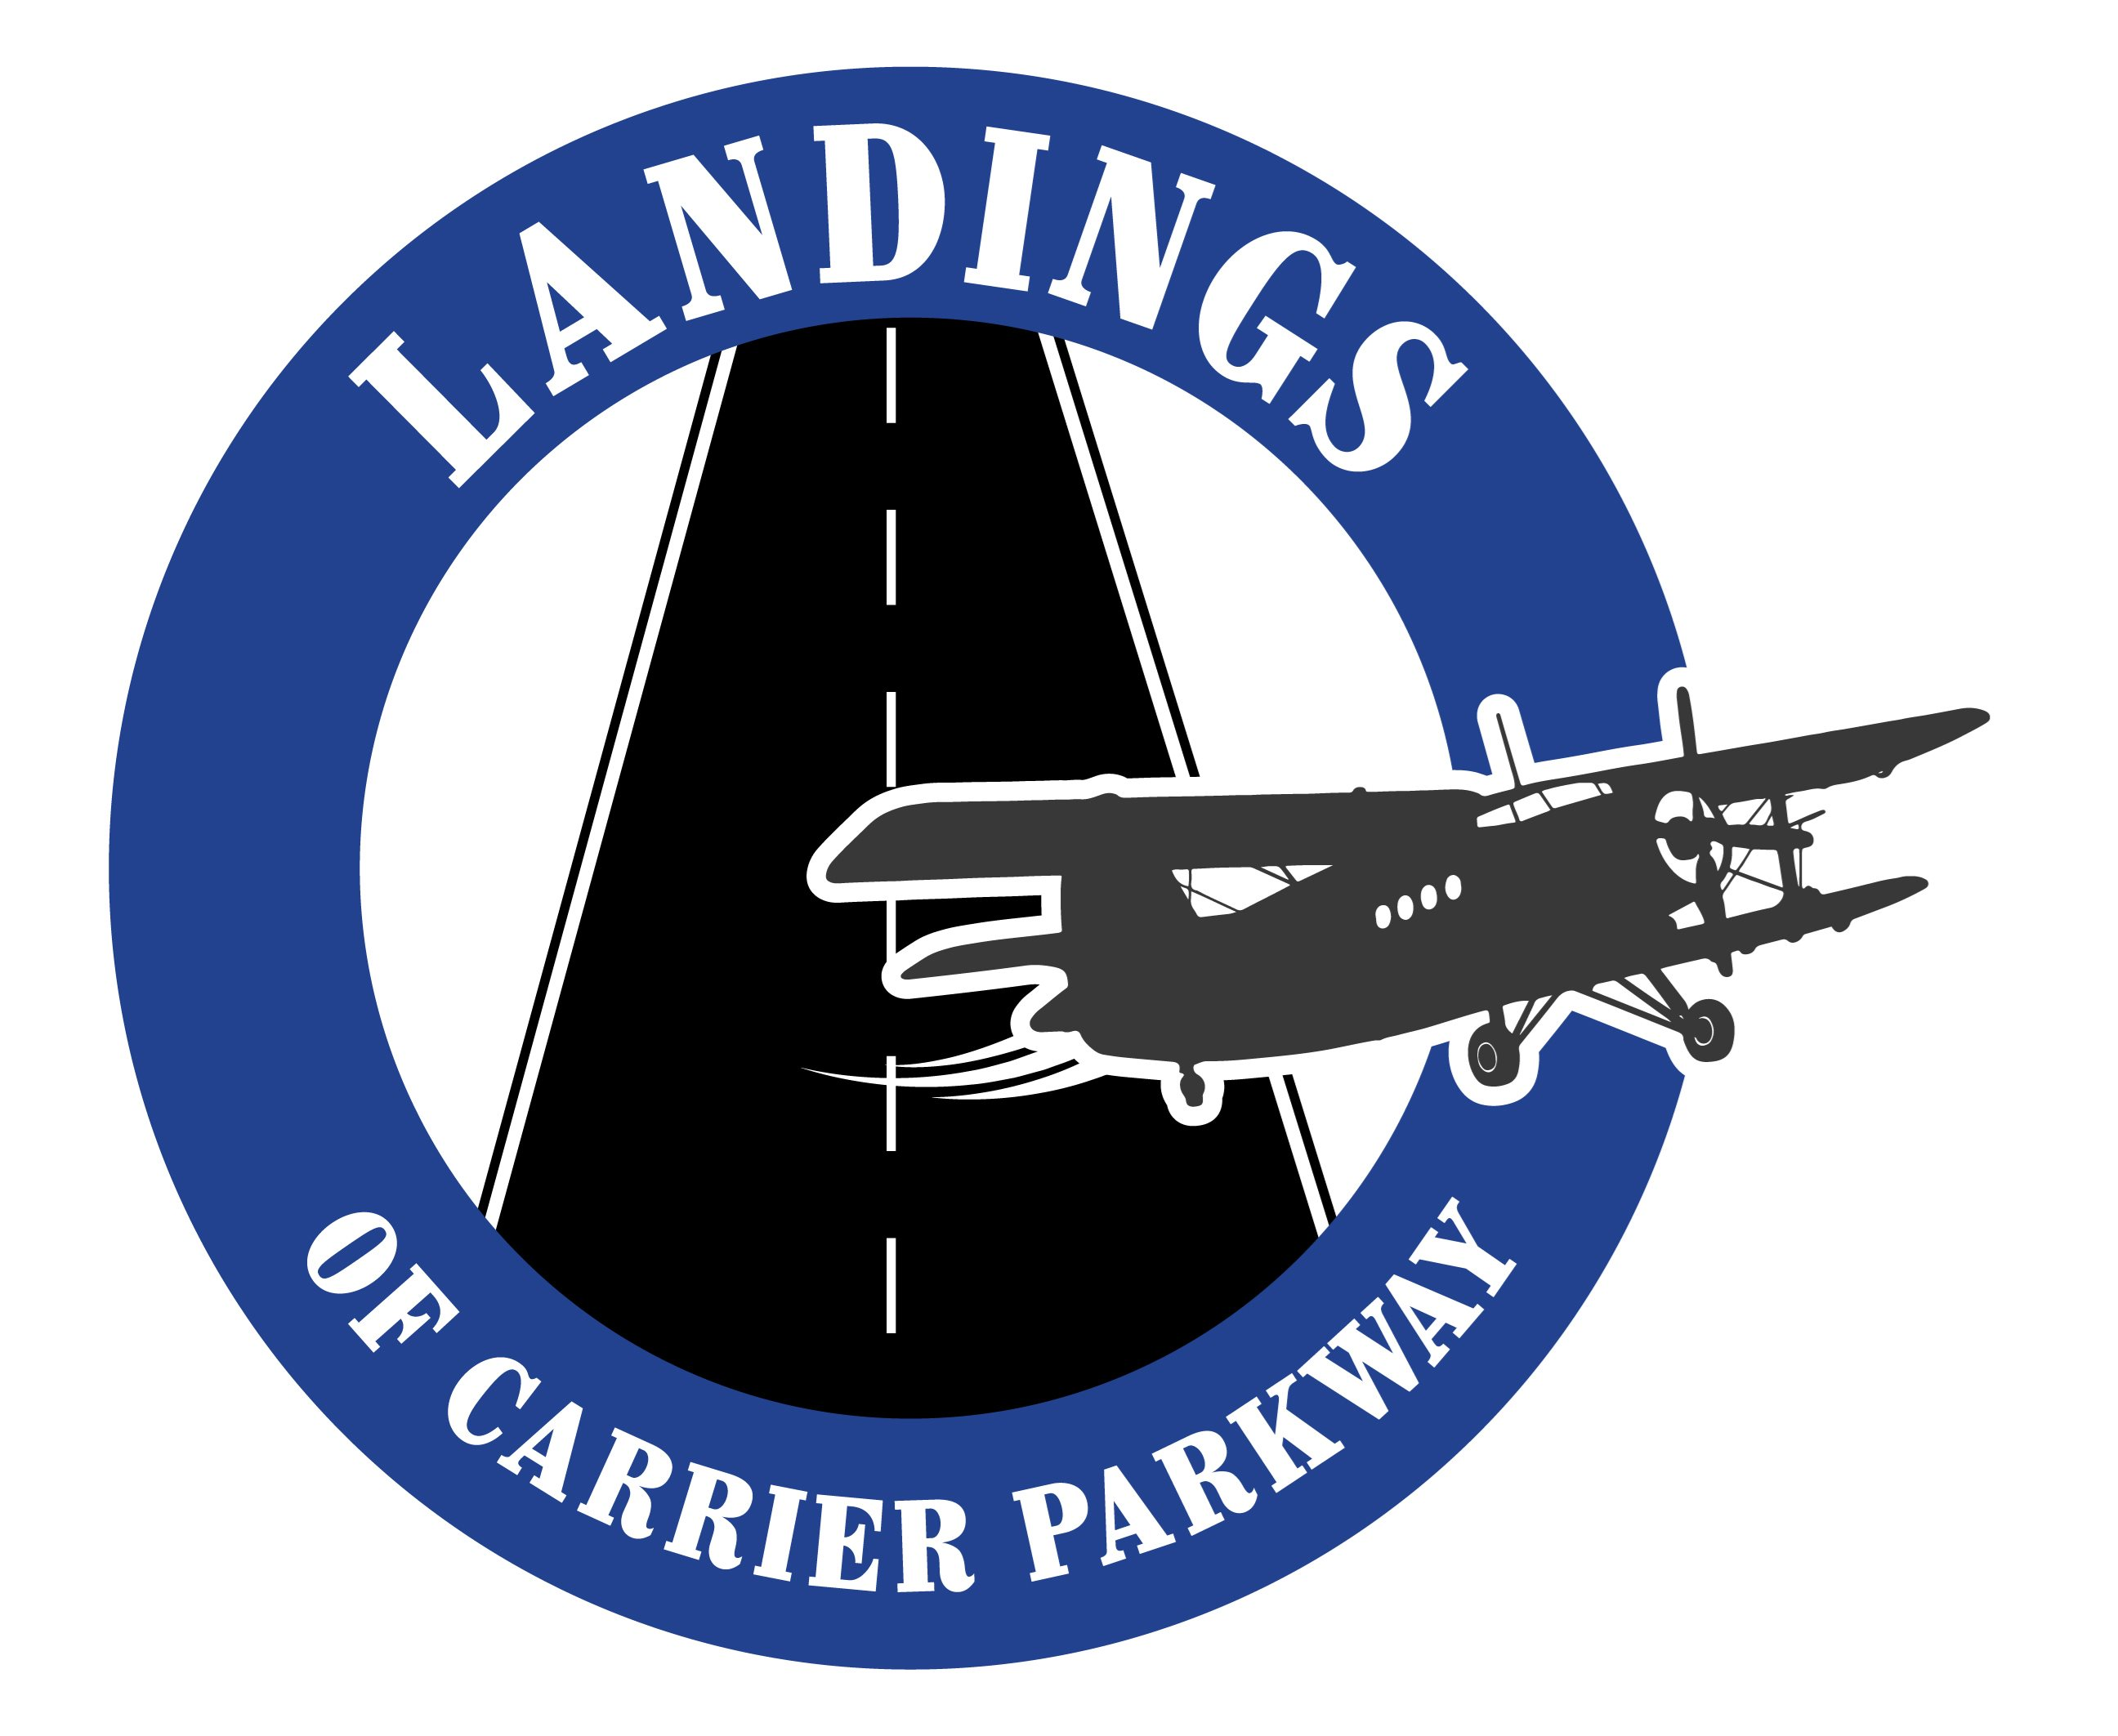 Map And Directions To Landings Of Carrier Parkway